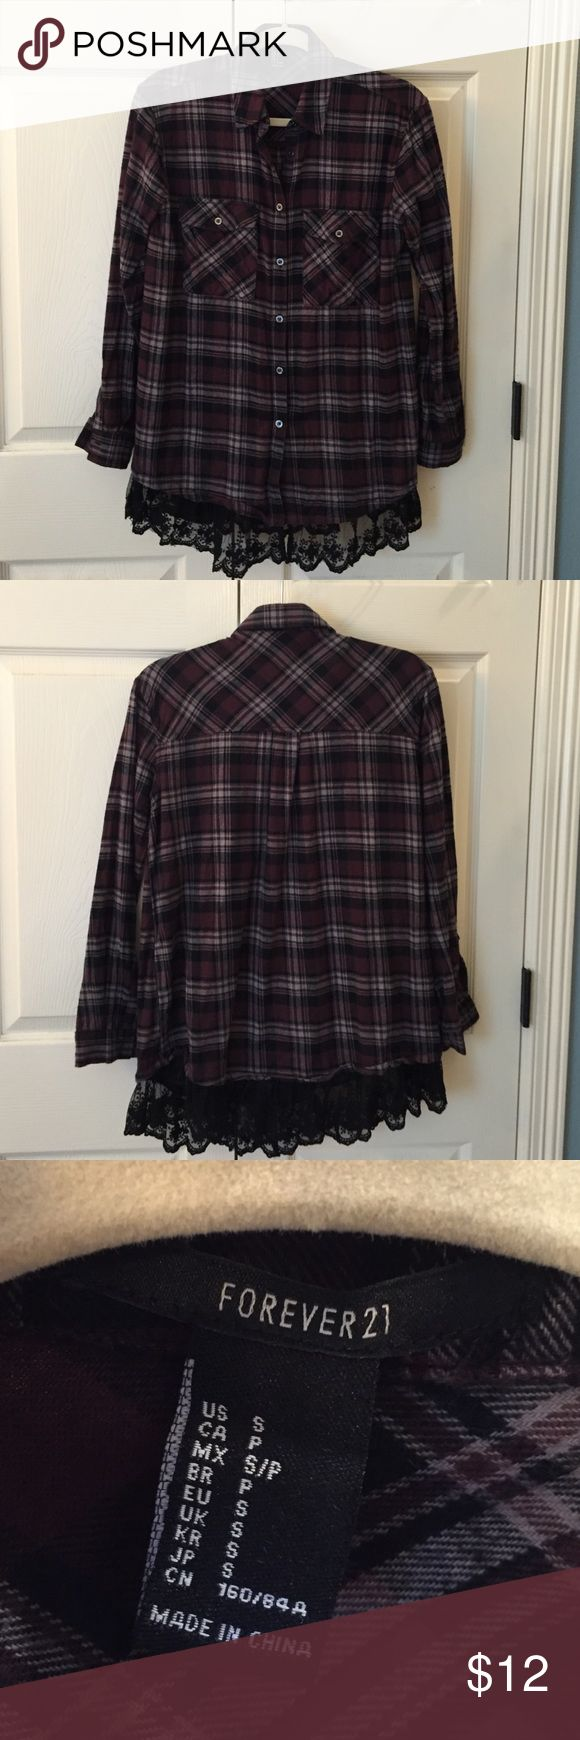 Forever 21 Flannel Shirt EUC Super cute long sleeved flannel shirt with lace trip on the bottom. Buttons in front. Only worn once. No flaws. Forever 21 Tops Button Down Shirts